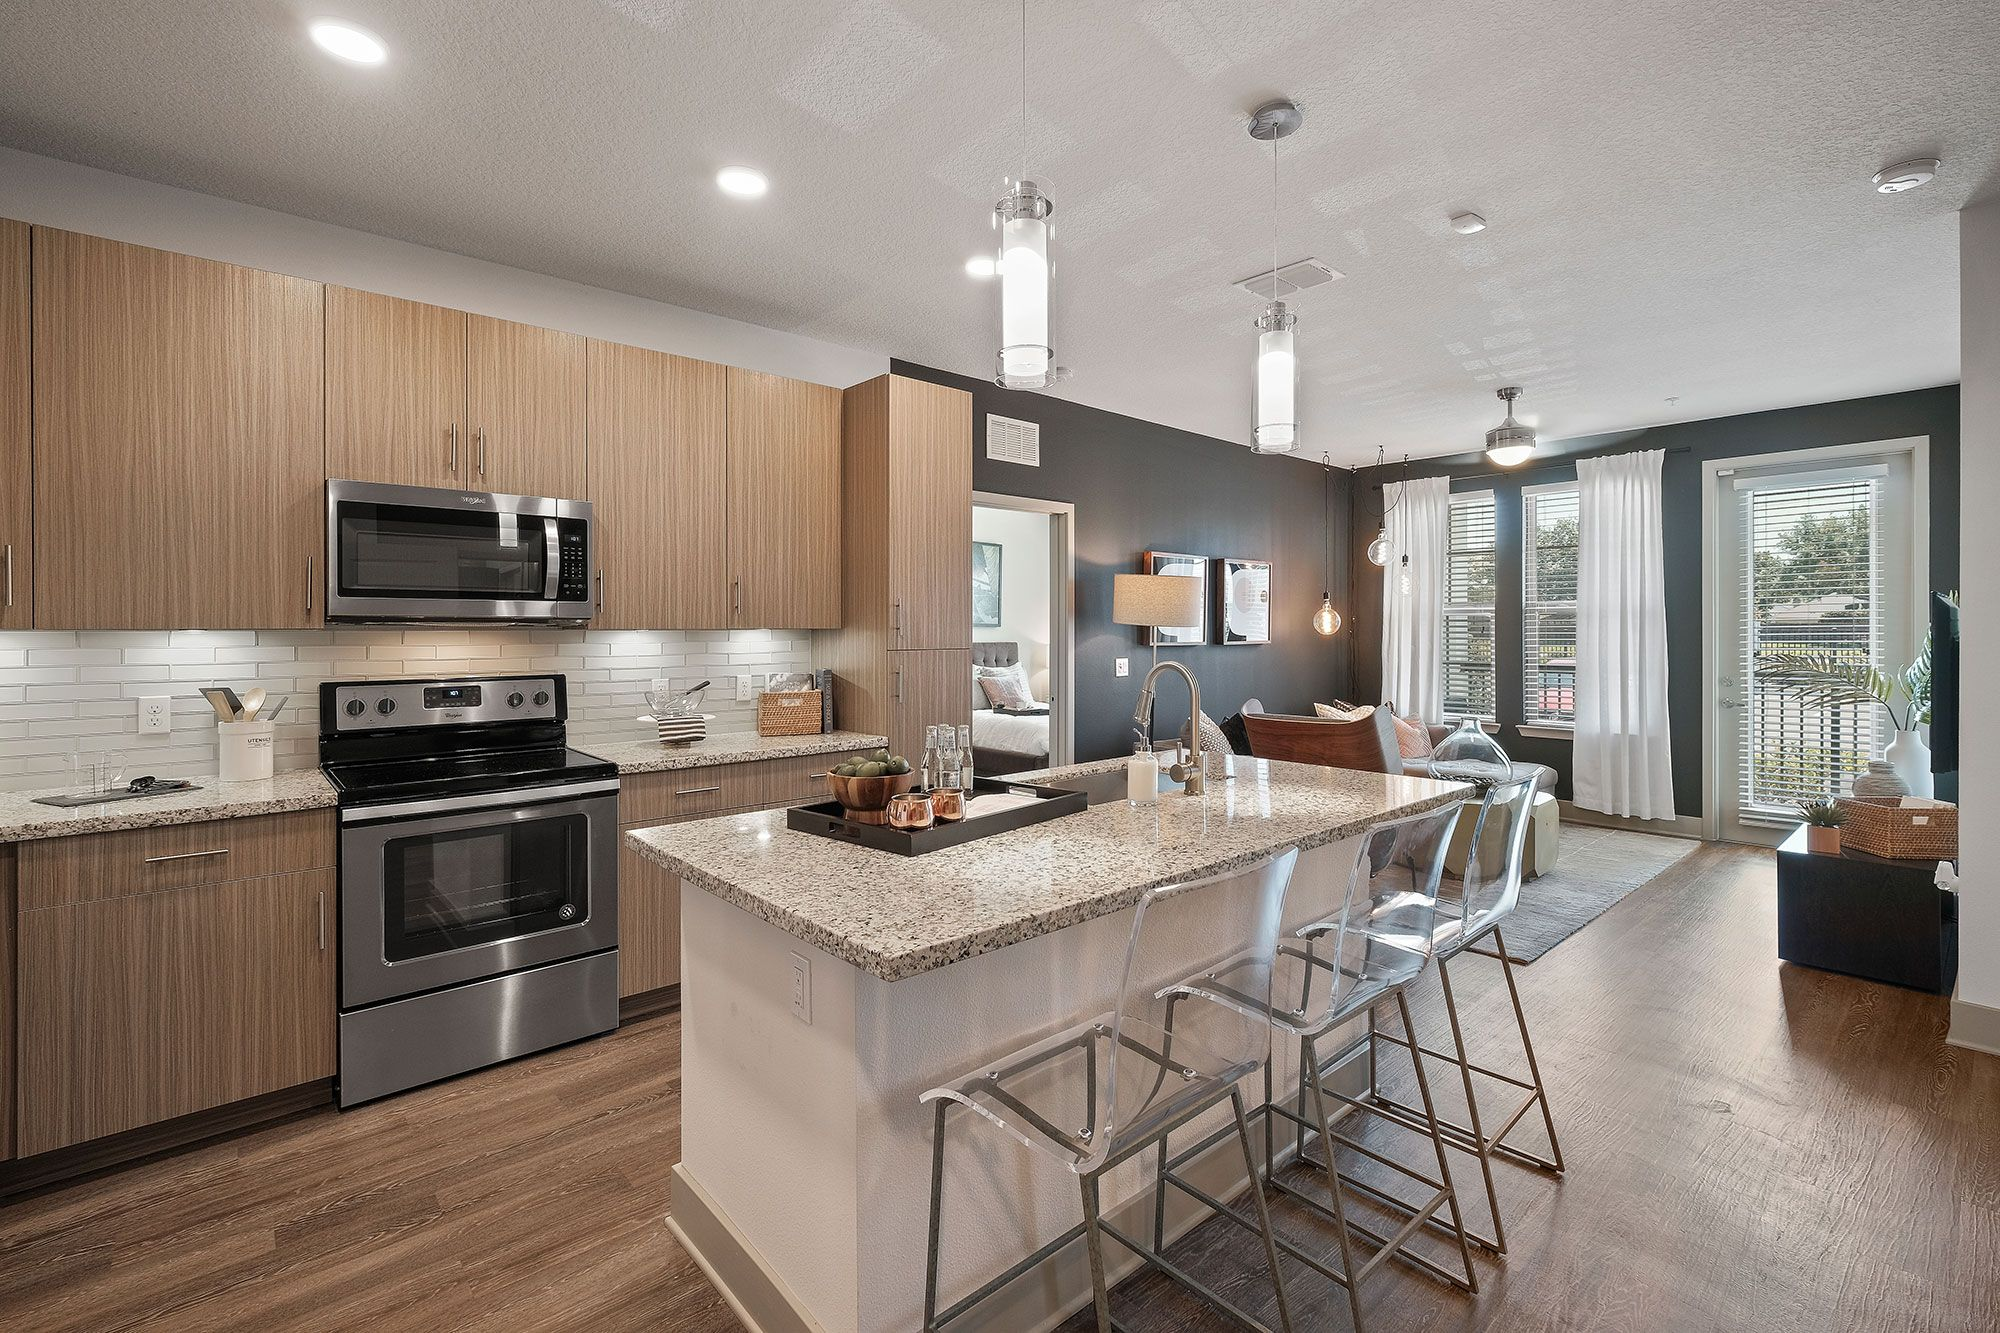 Apartment kitchen with island and granite countertops